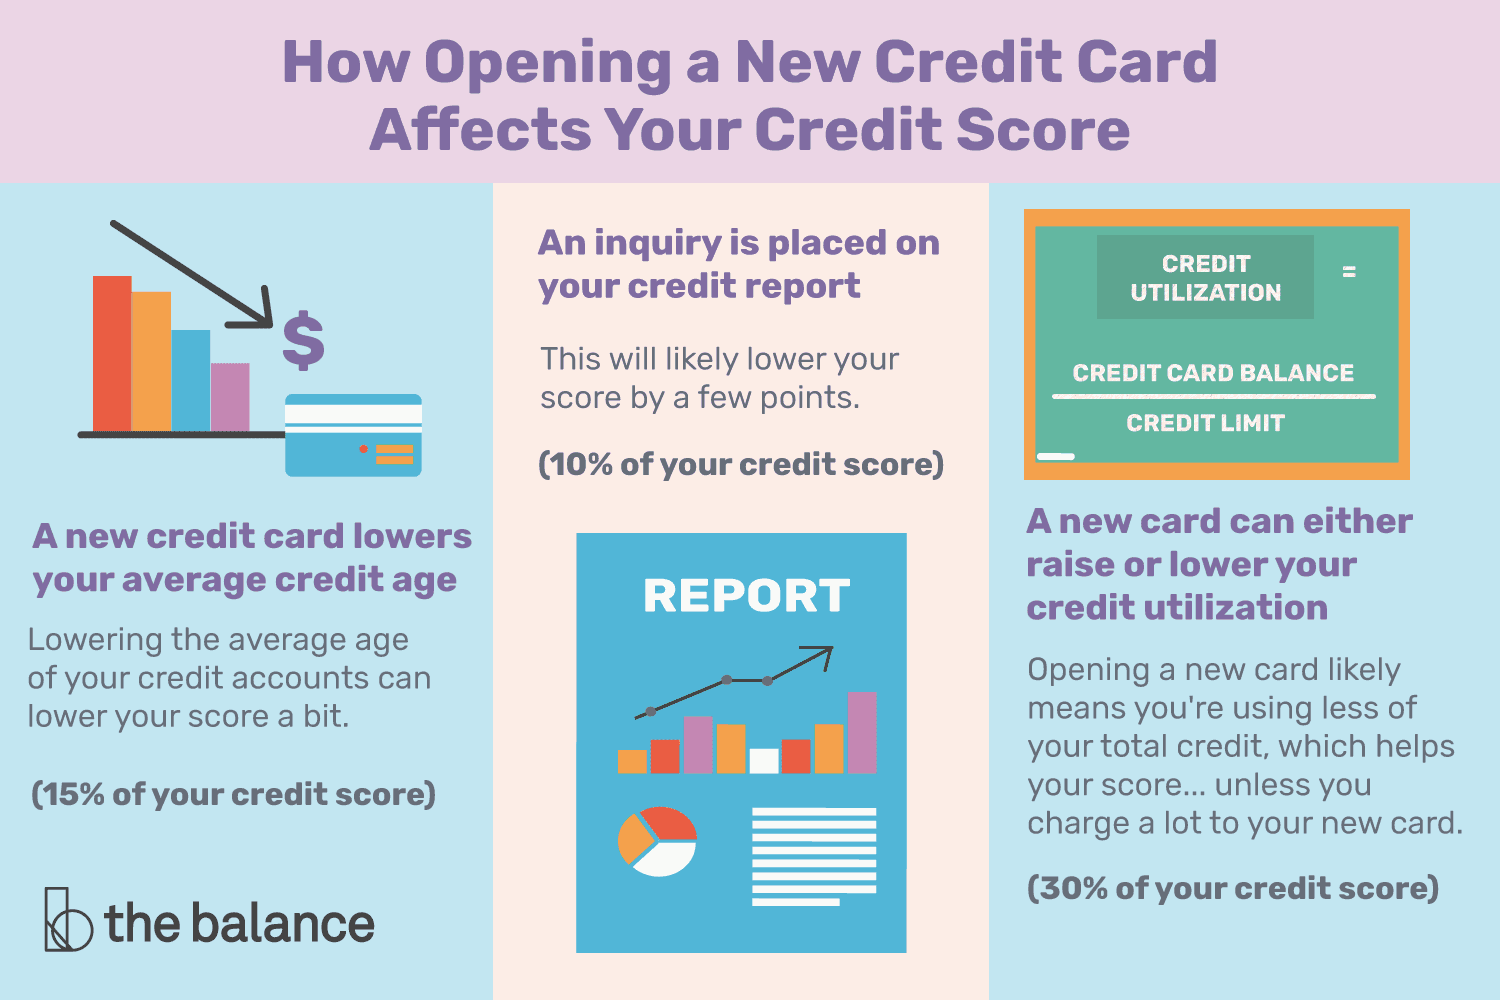 how-opening-a-new-credit-card-affects-your-credit -score-96050-final-5b60bade46e0fb0025b3bc98.png